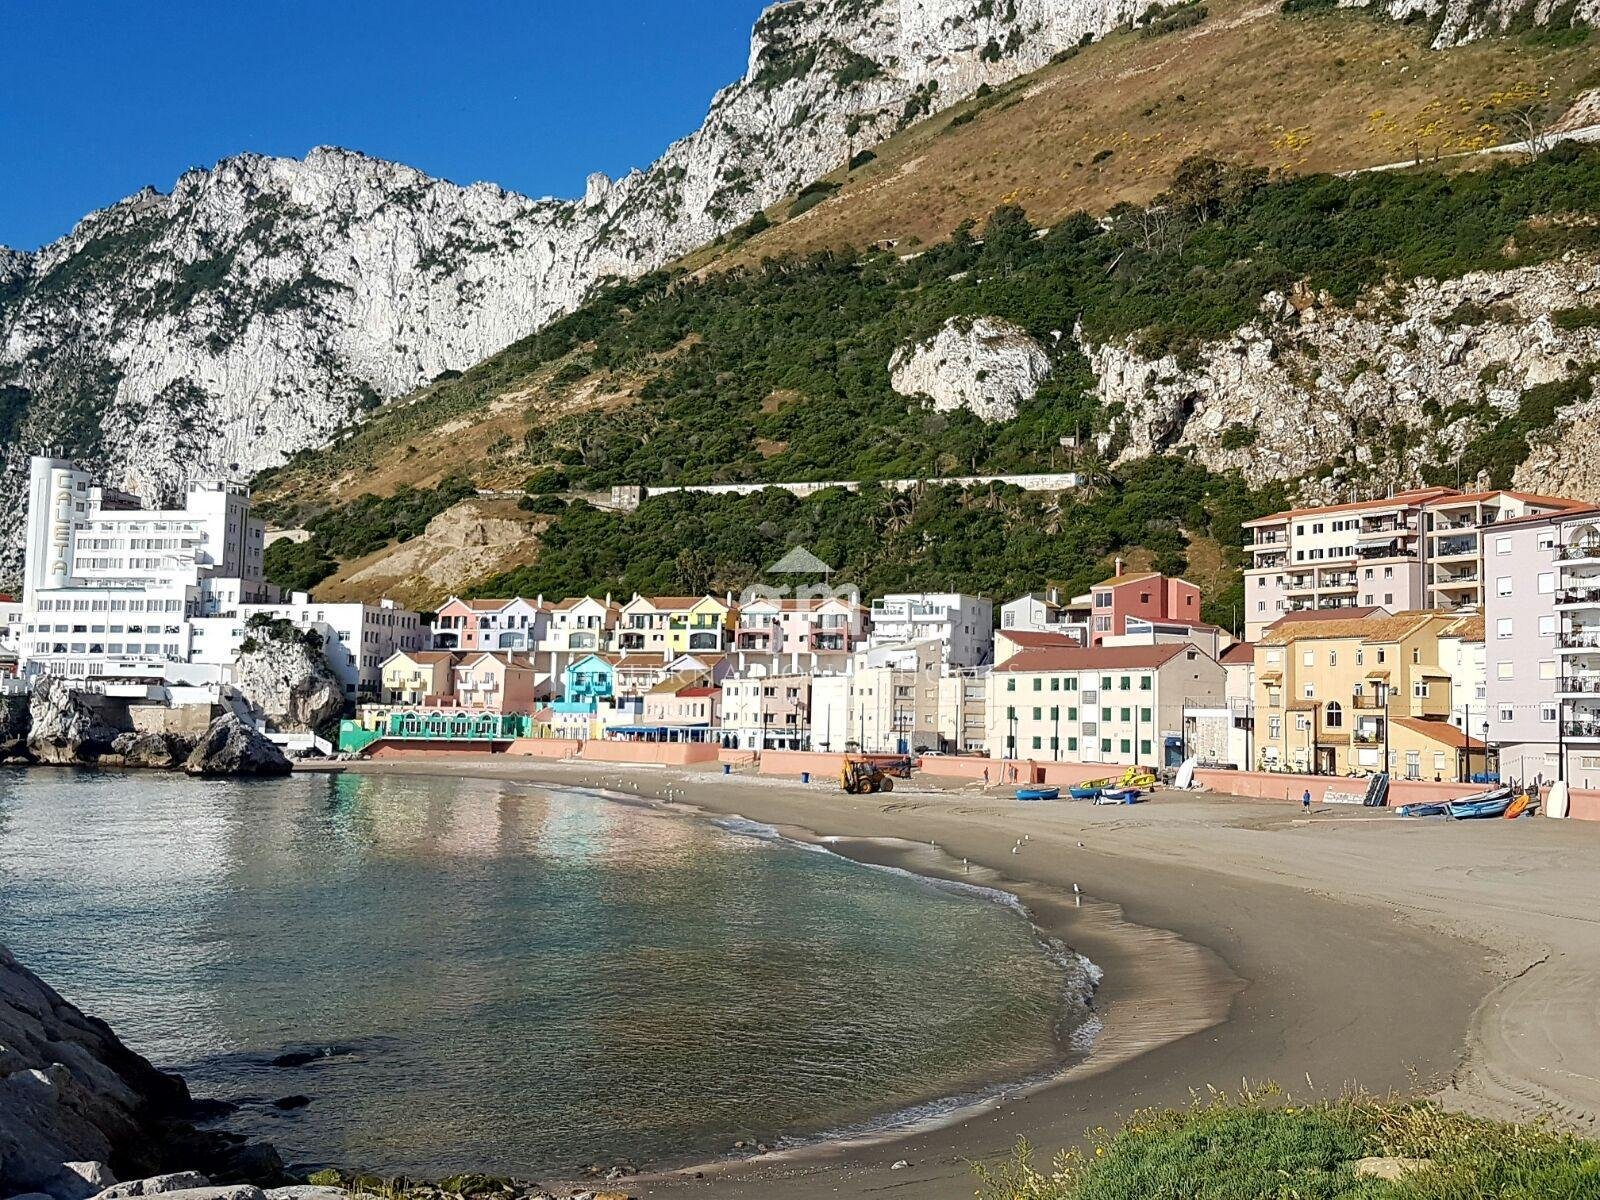 Commercial property to rent in Catalan Bay Image 2